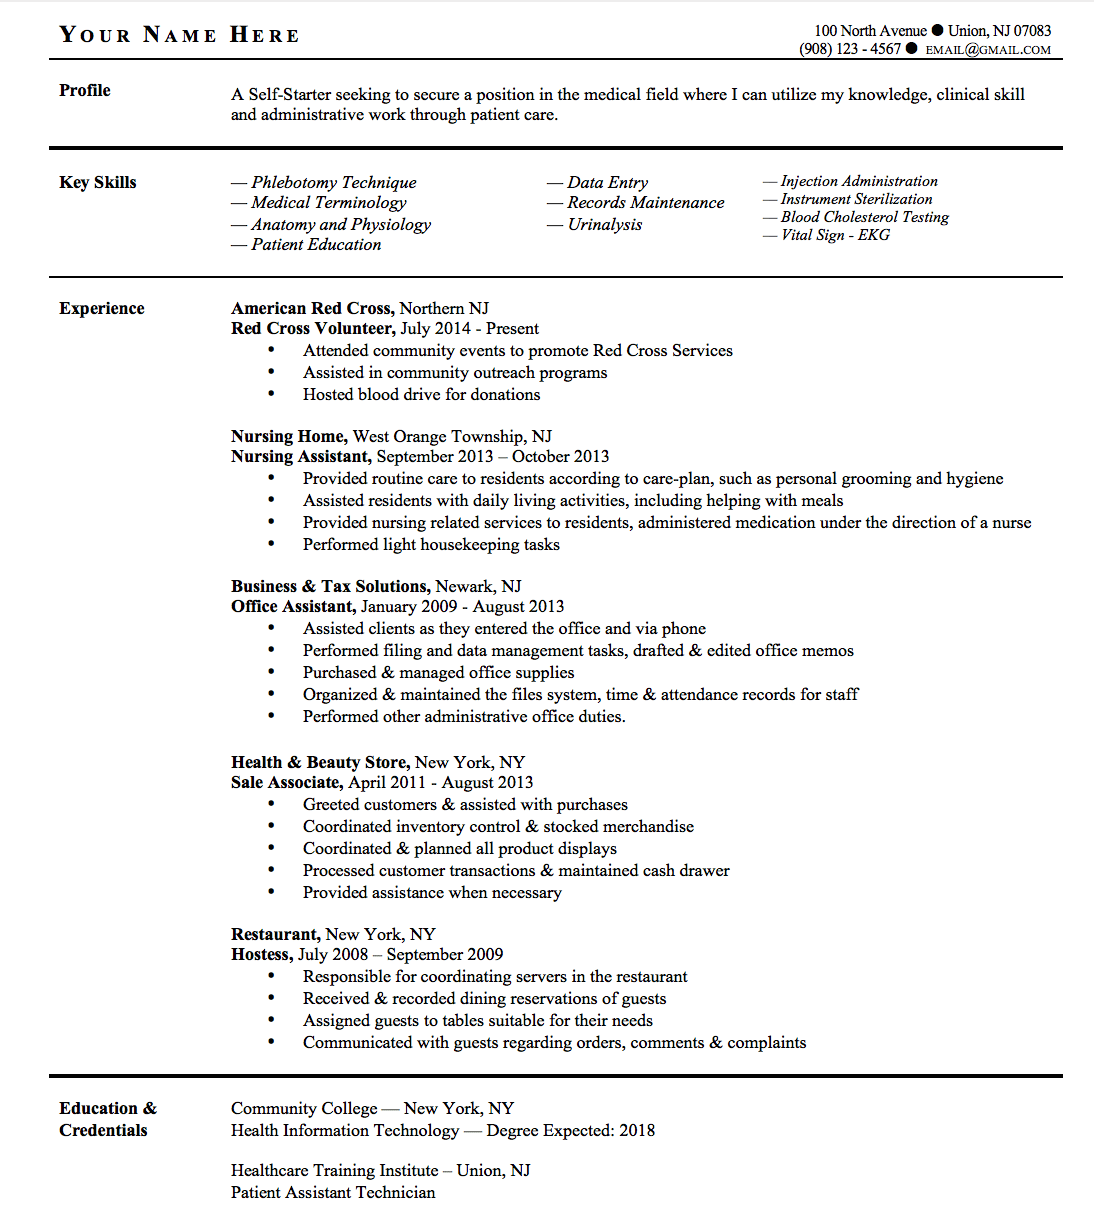 resume objective entry level healthcare professional resume resume objective entry level healthcare entry level police officer resume objective examples important resume tips for